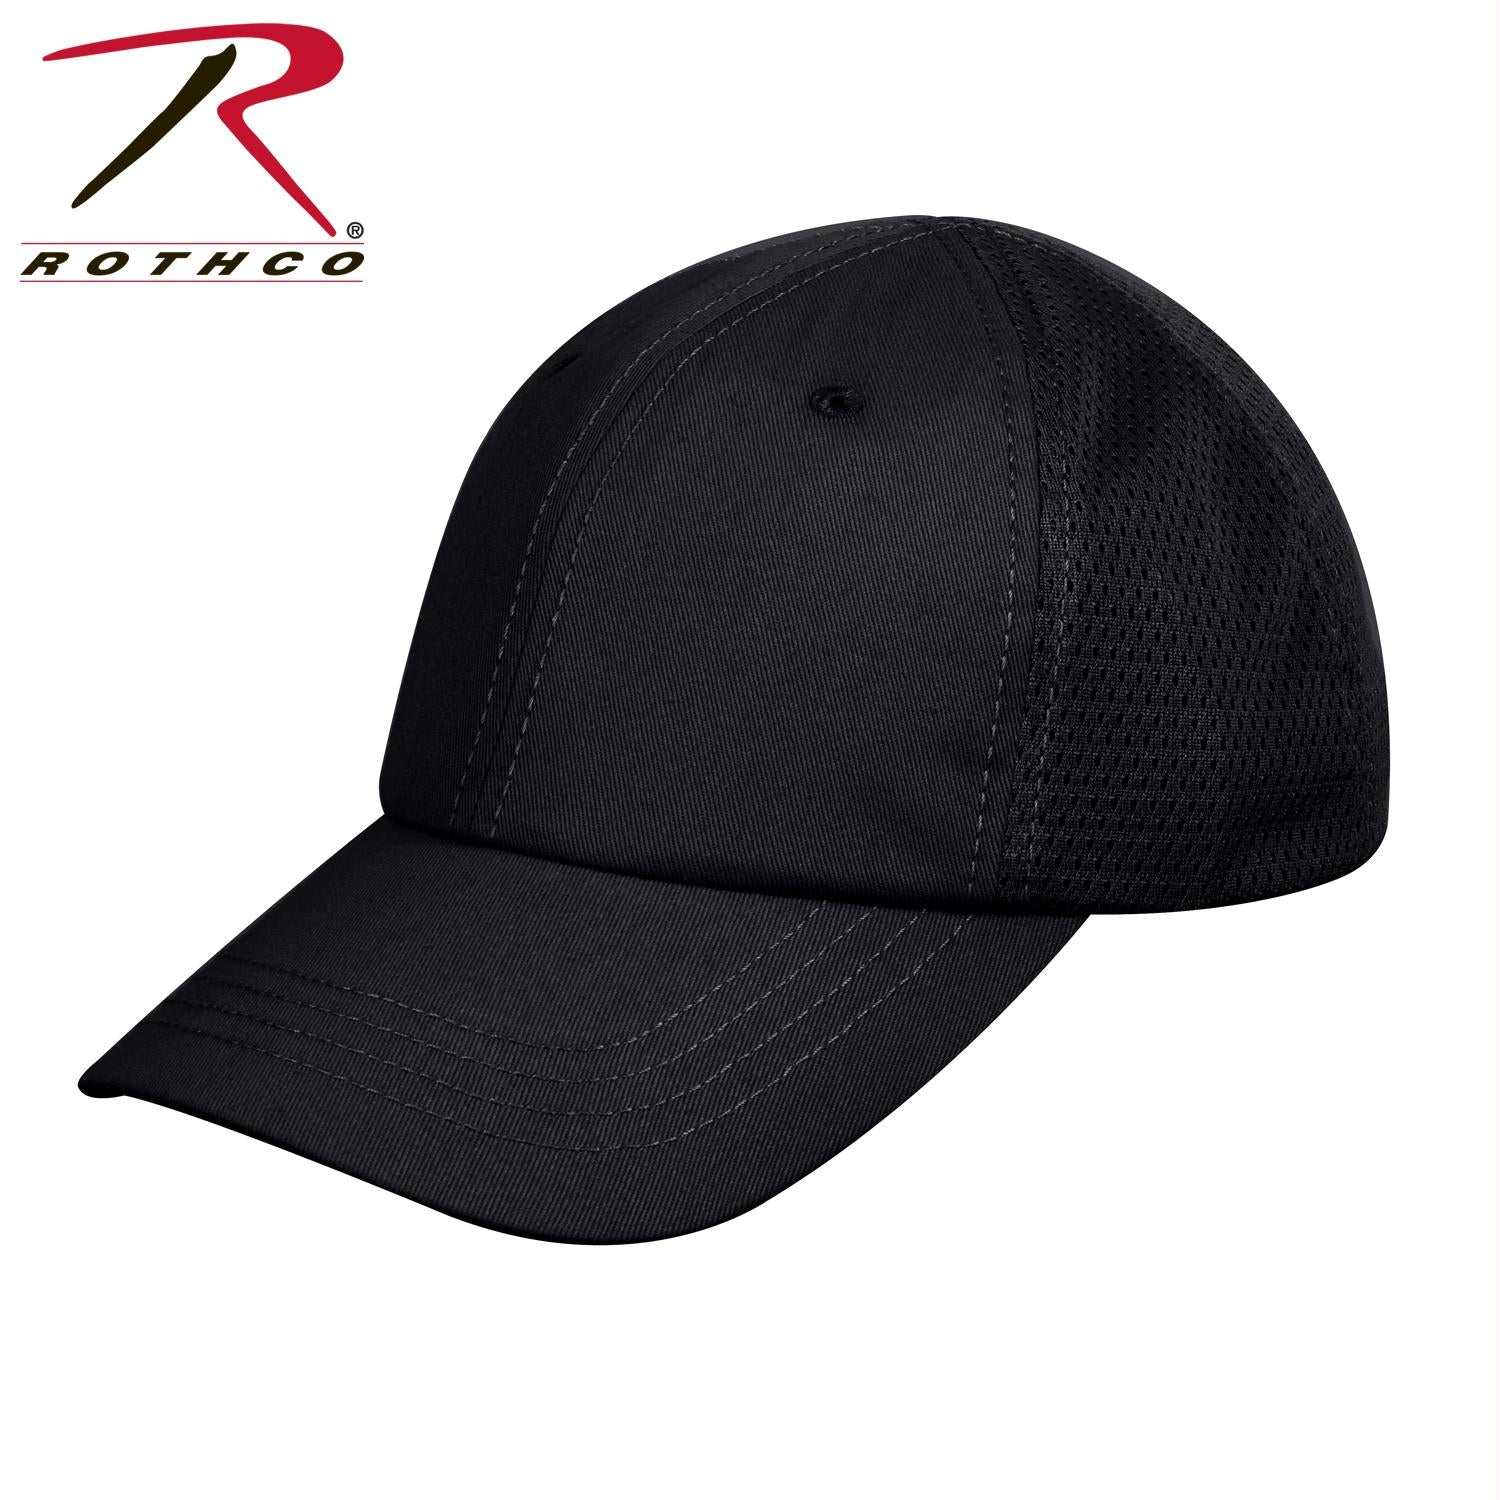 Rothco Mesh Back Tactical Cap - Black / One Size